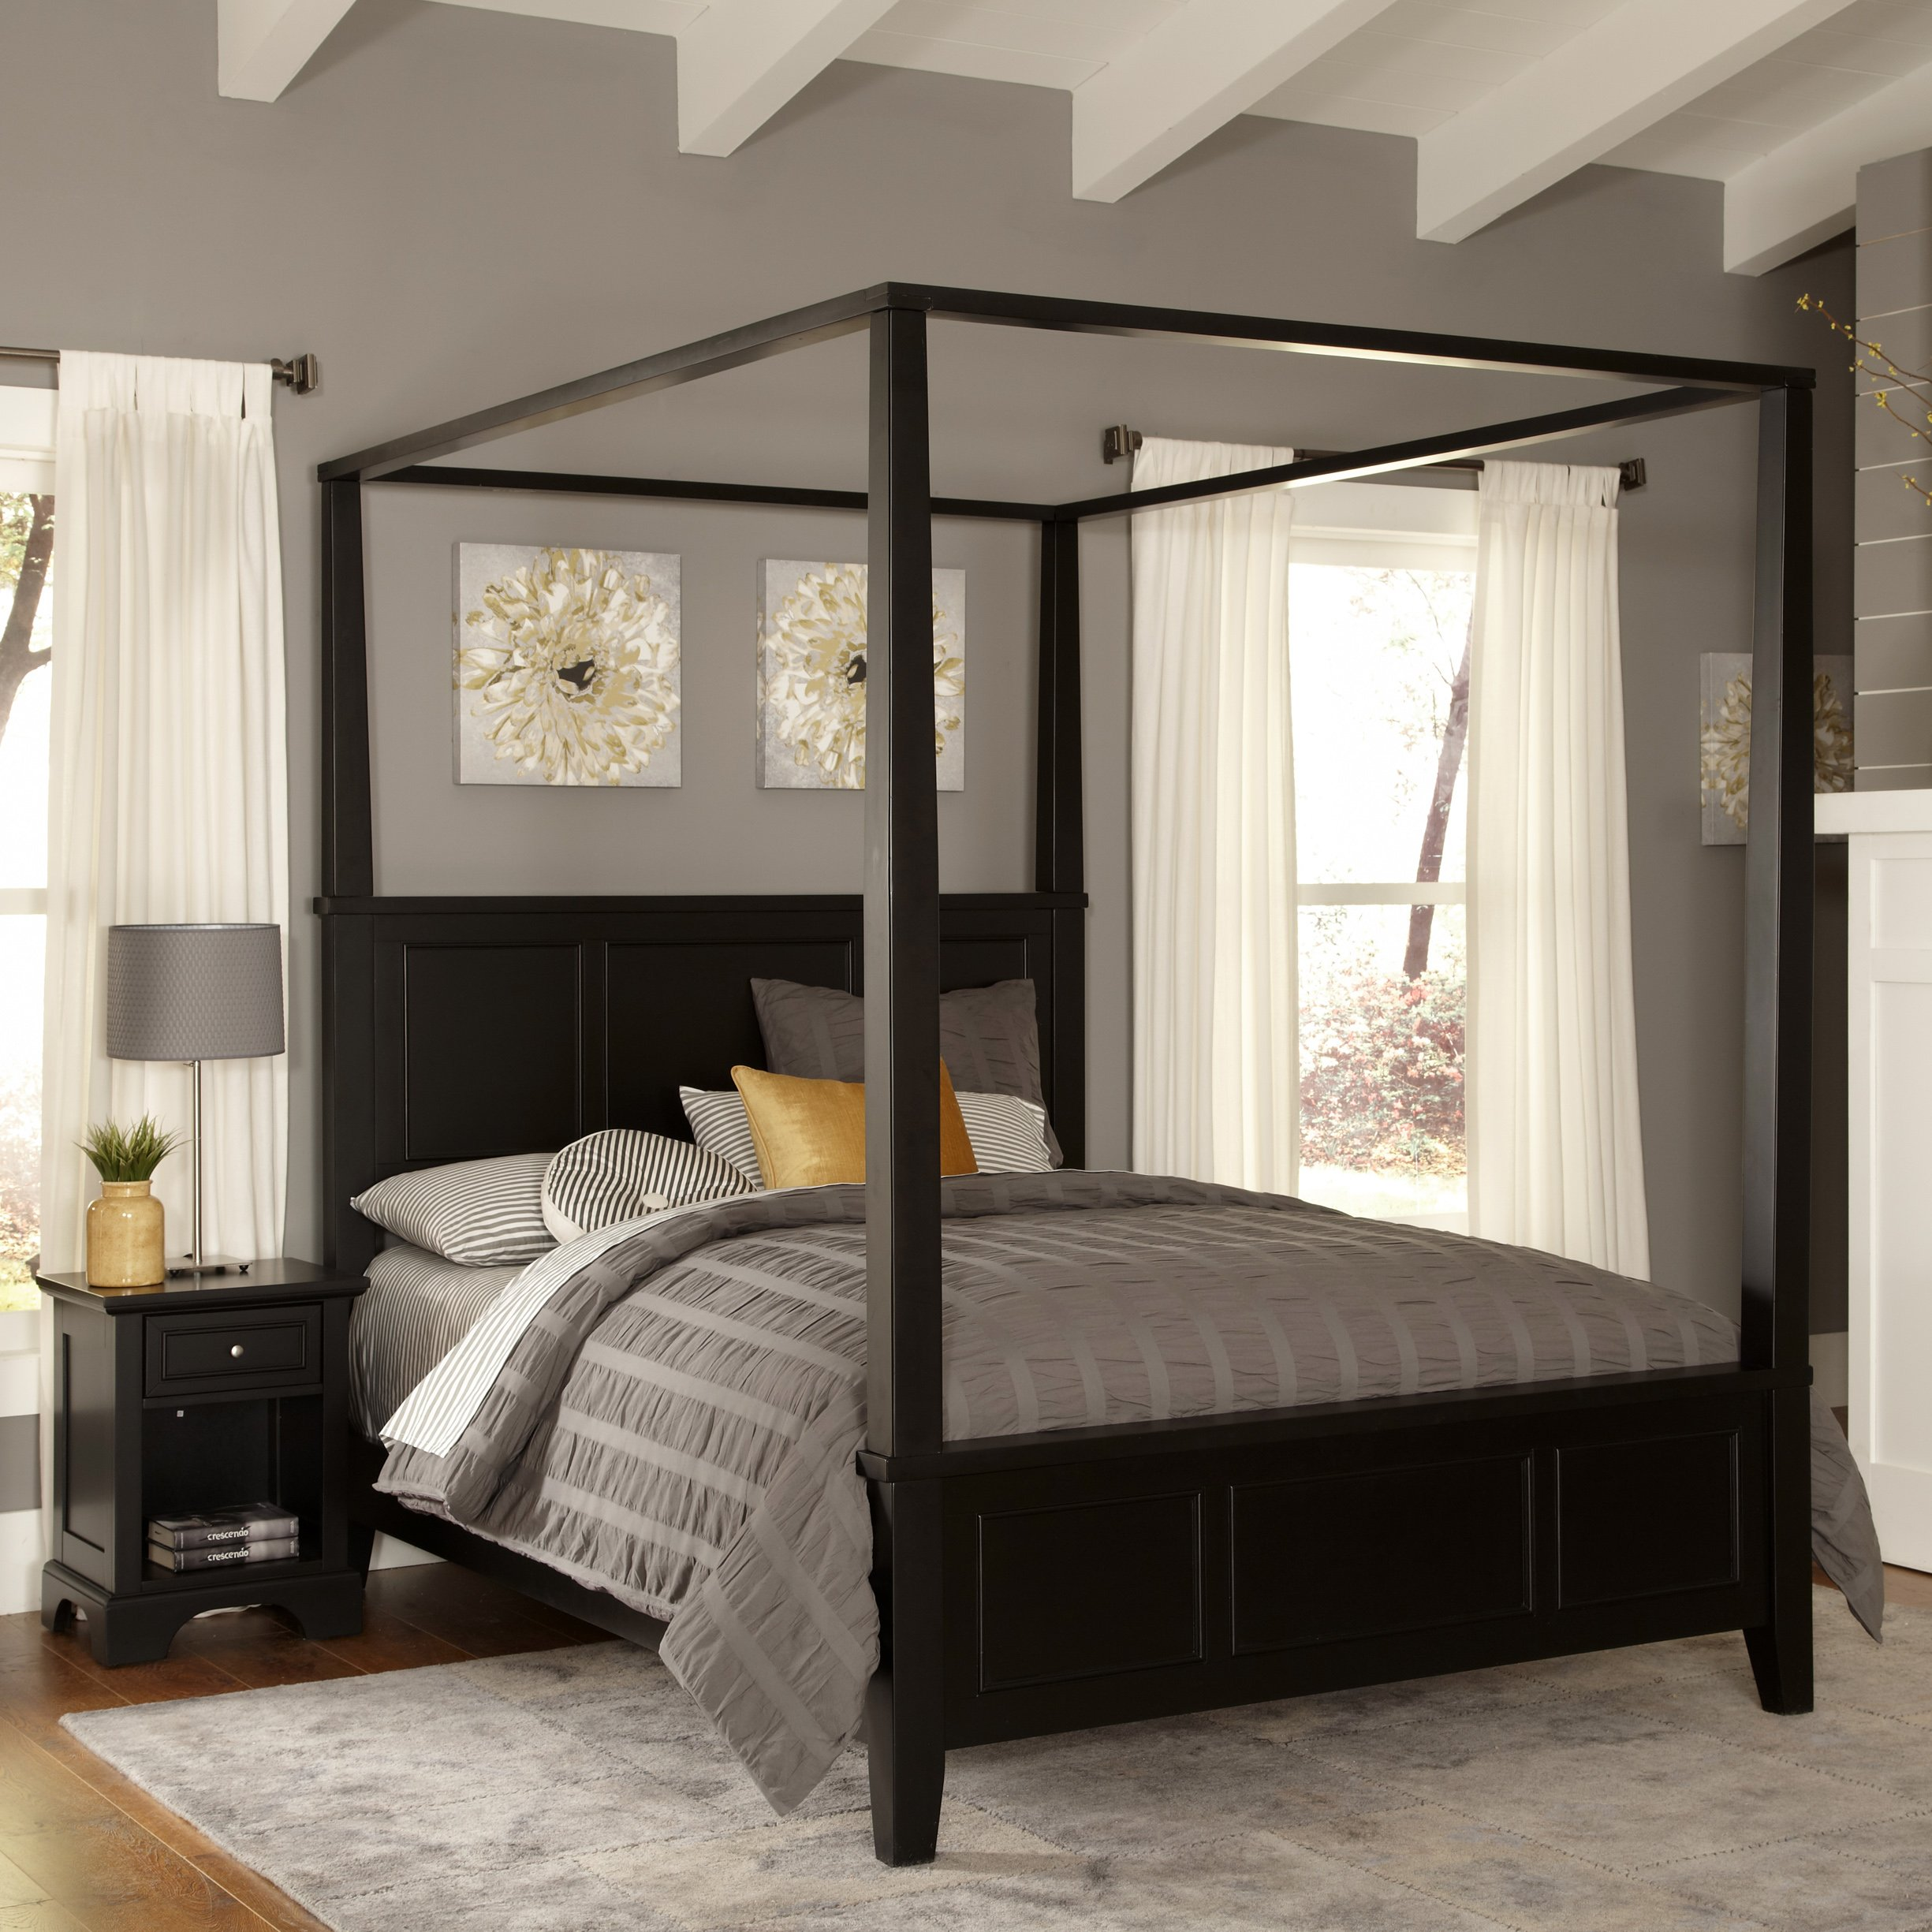 Bedford Black Queen Canopy Bed & Night Stand by Home Styles